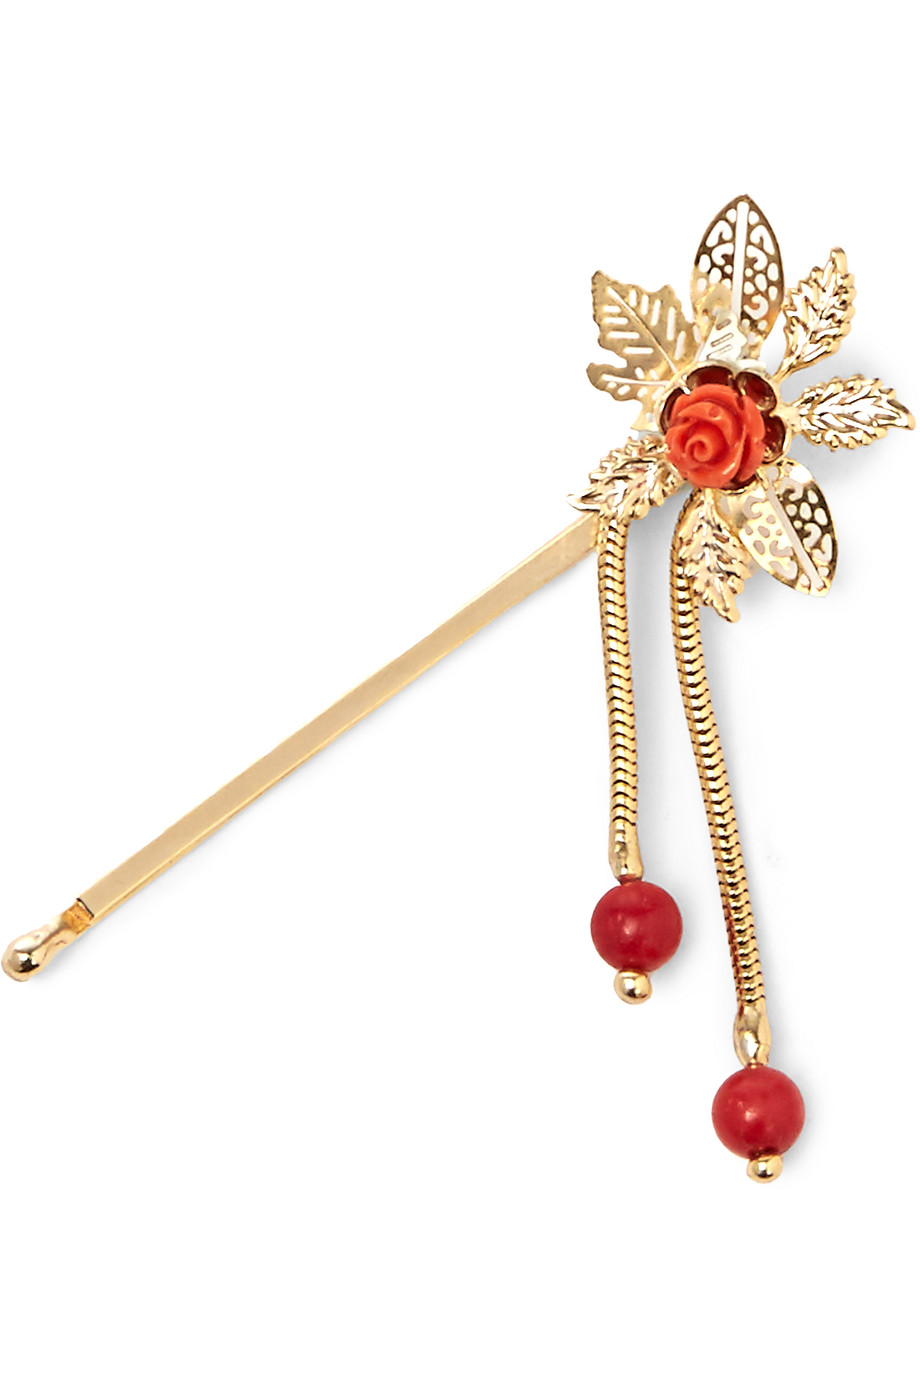 Rosantica Gold-Tone Quartz Hair Slide, Women's